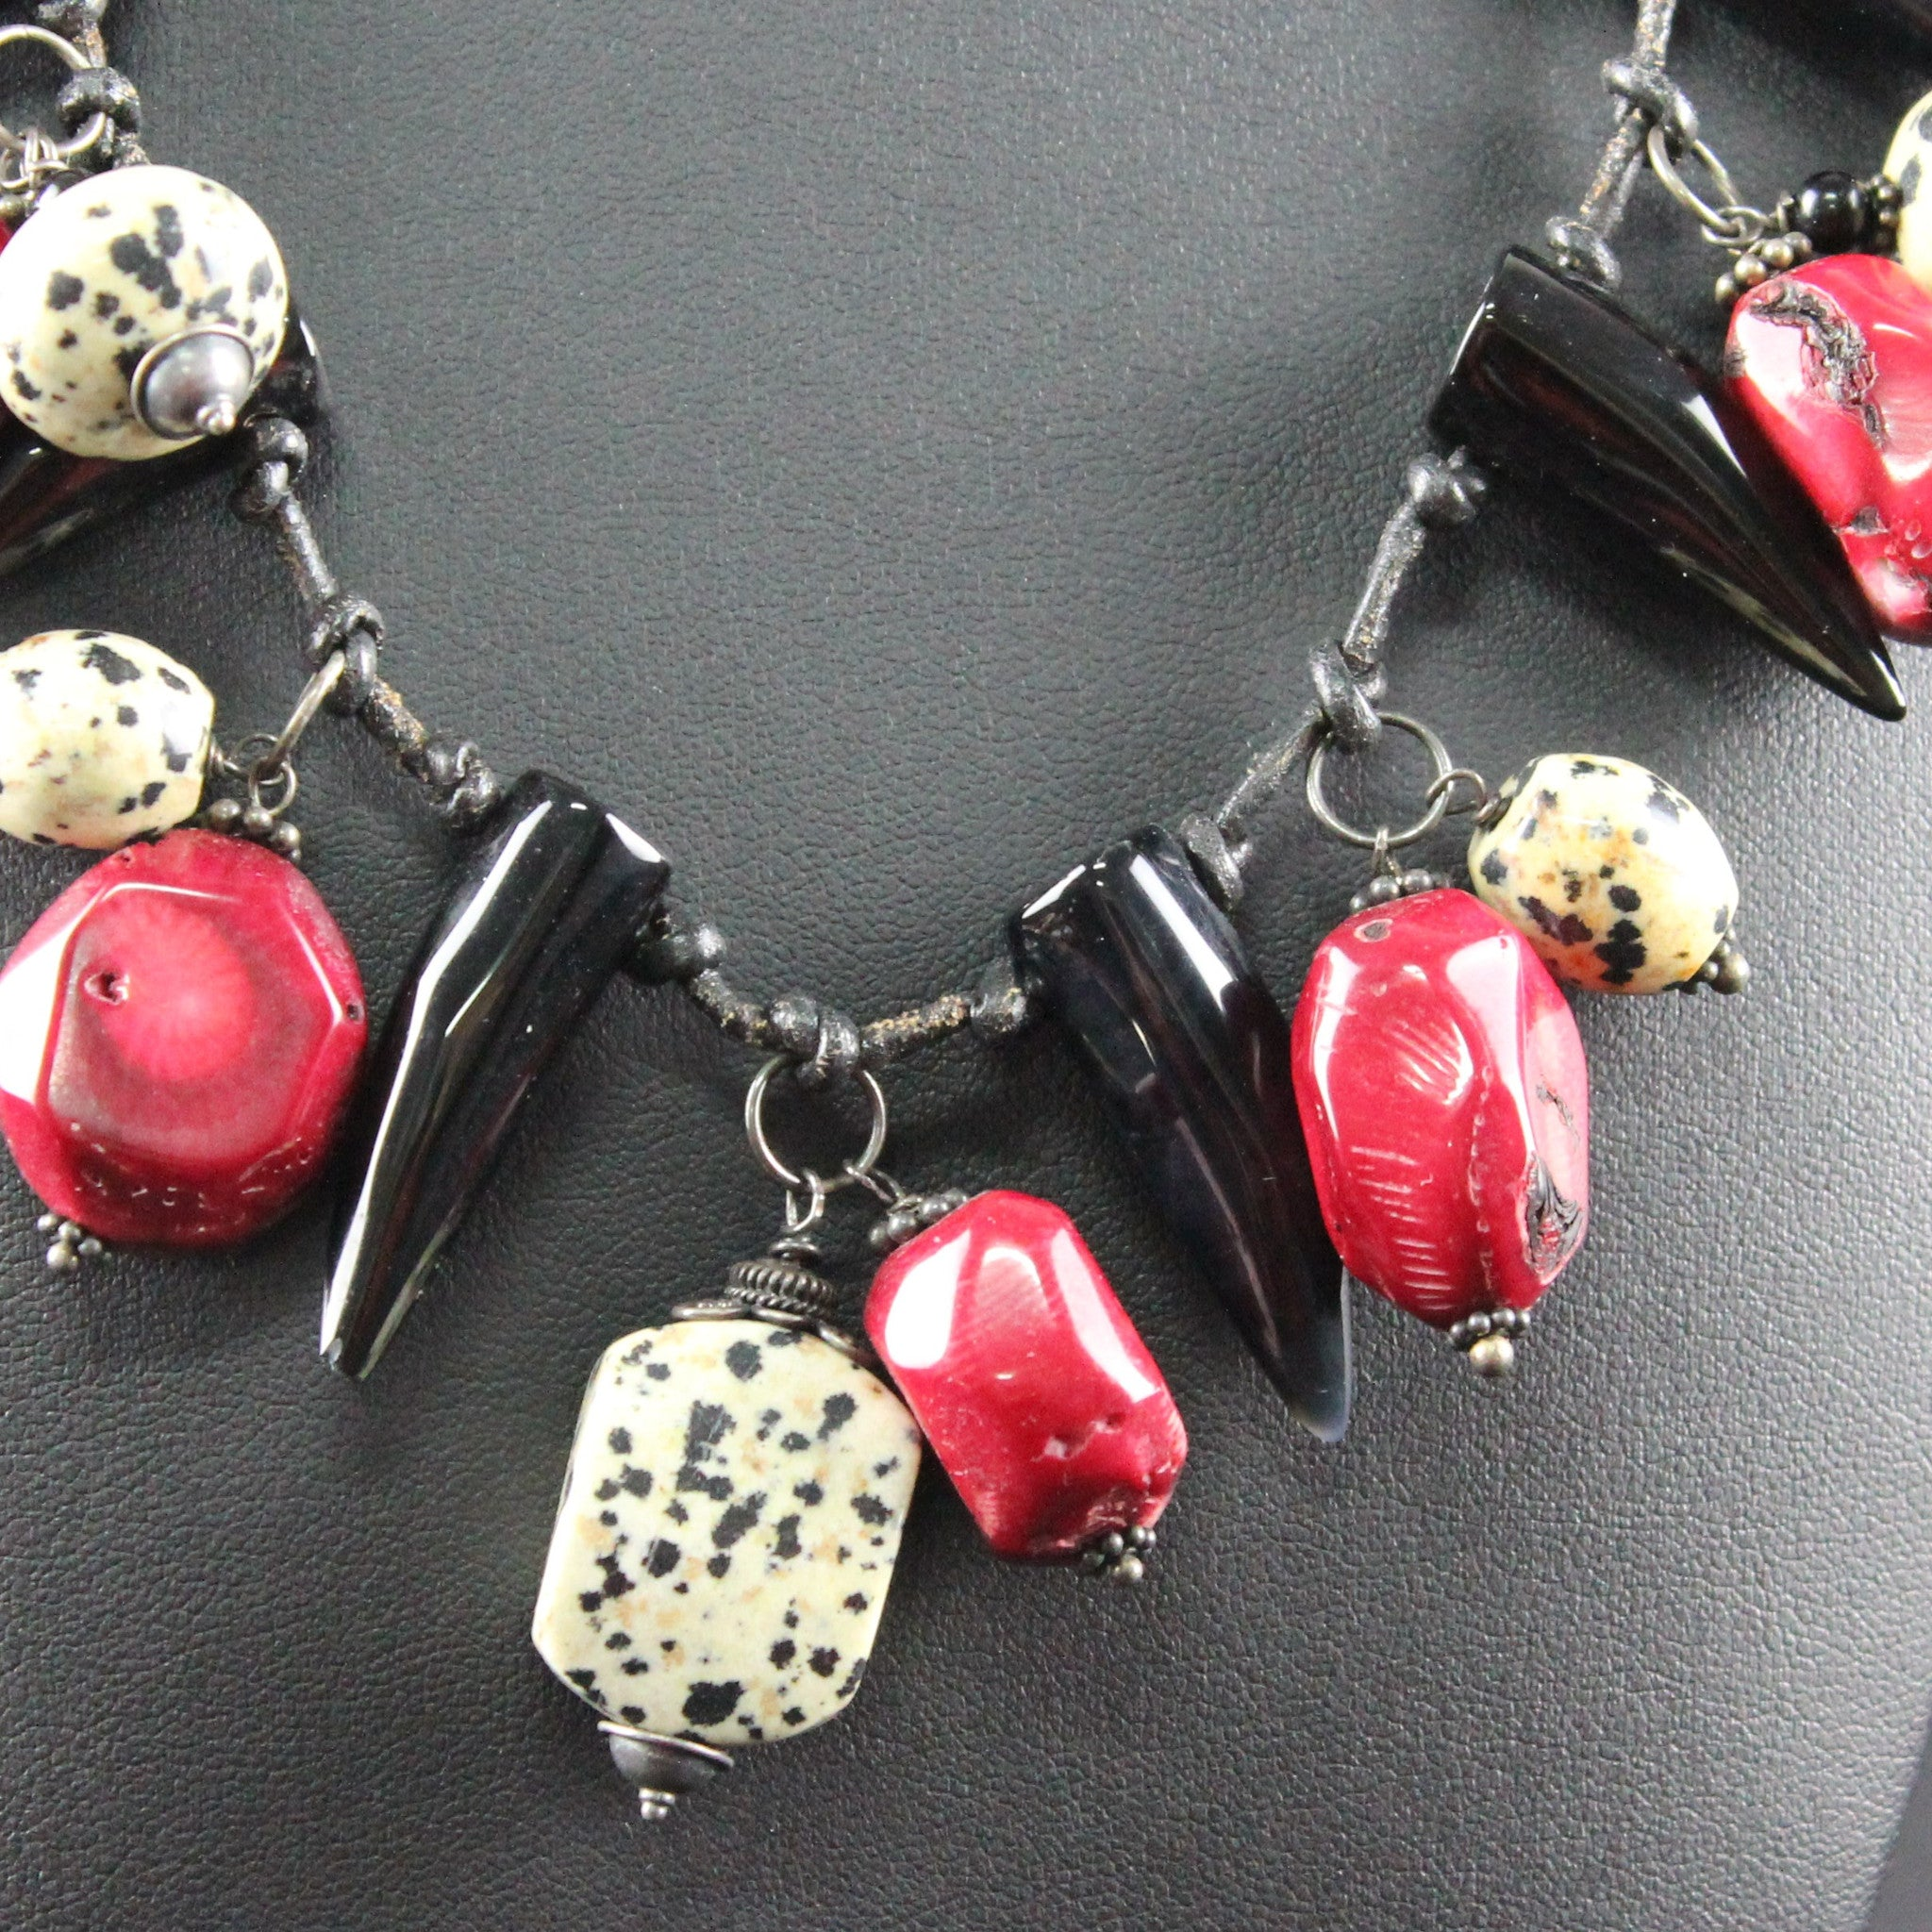 Susan M - Dalmation jasper and Coral on leather Necklace